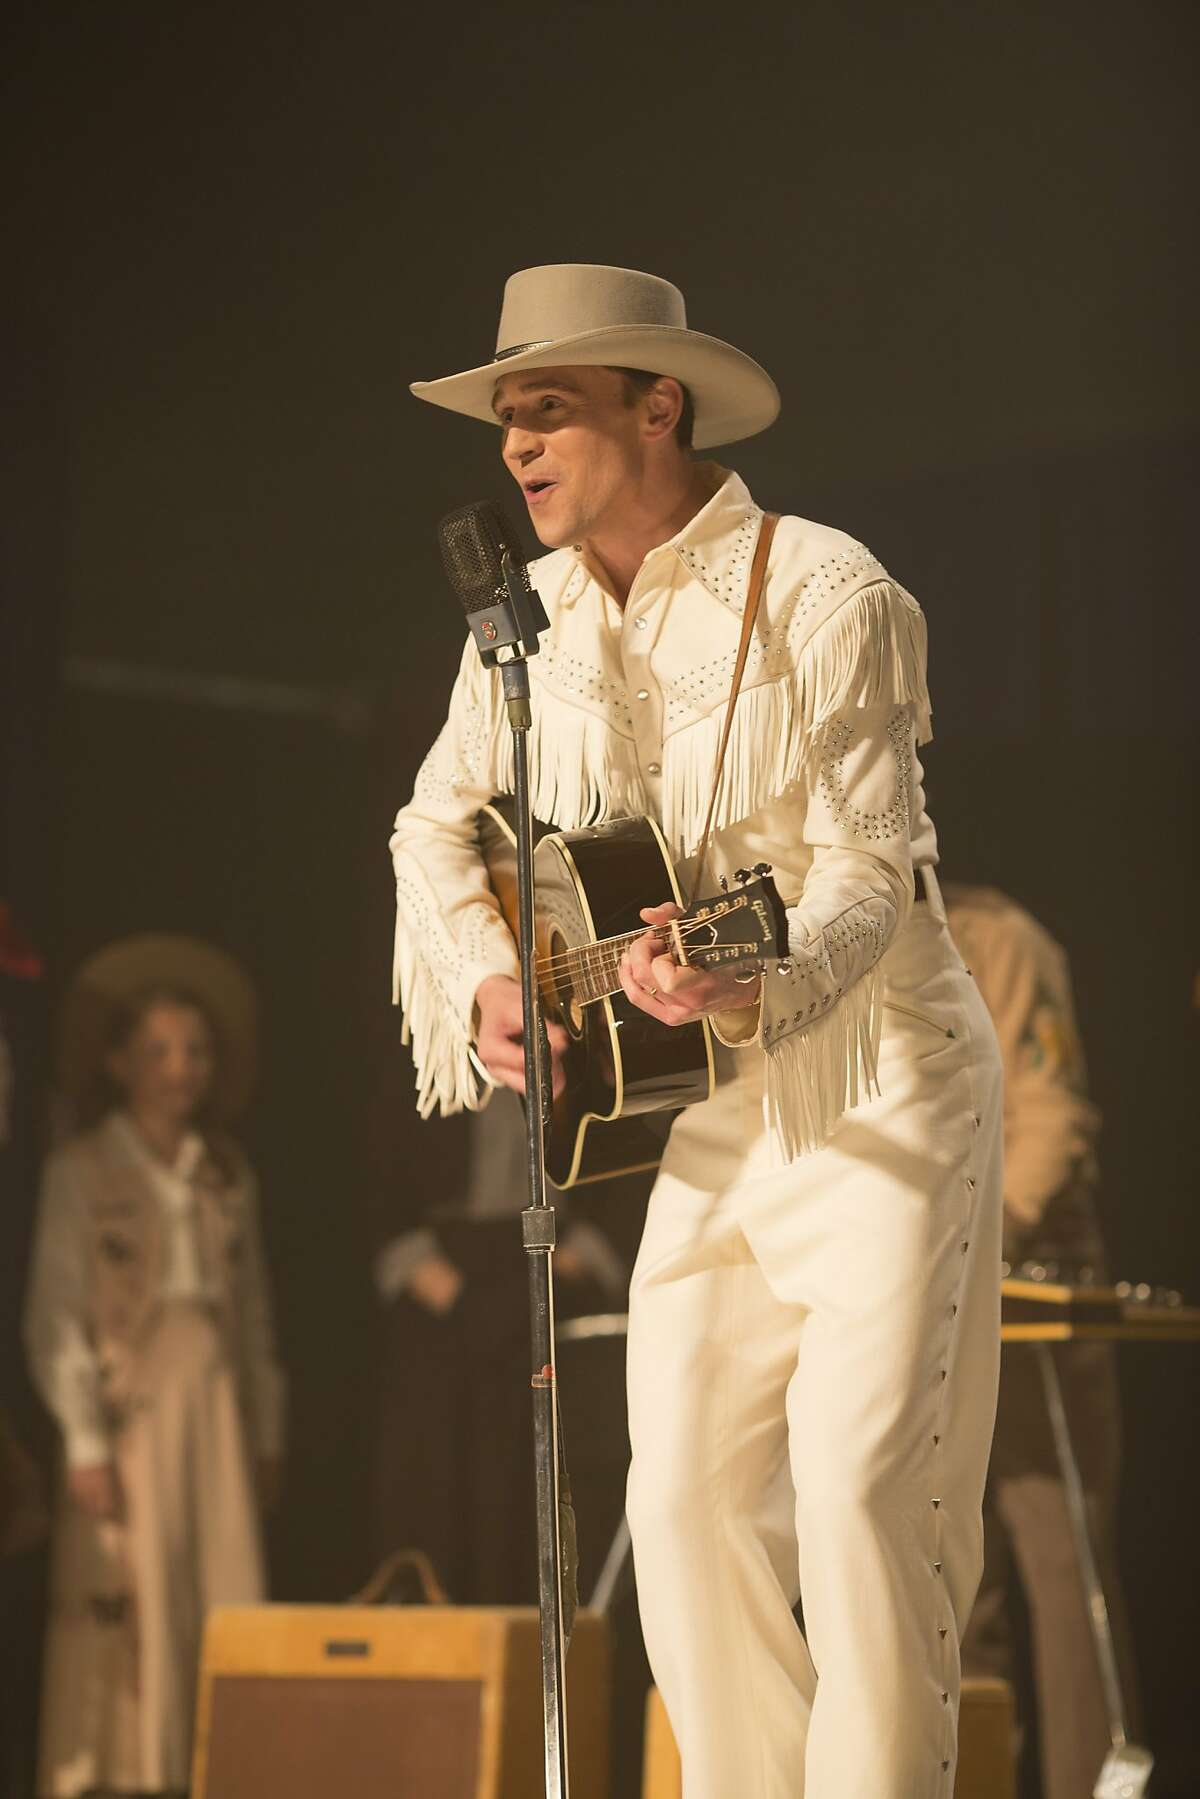 """Tom Hiddleston as Hank Williams in """"I Saw the Light,"""" opening at Bay Area theaters on Friday, April 1.Photo by Sam Emerson, Courtesy of Sony Pictures Classics"""